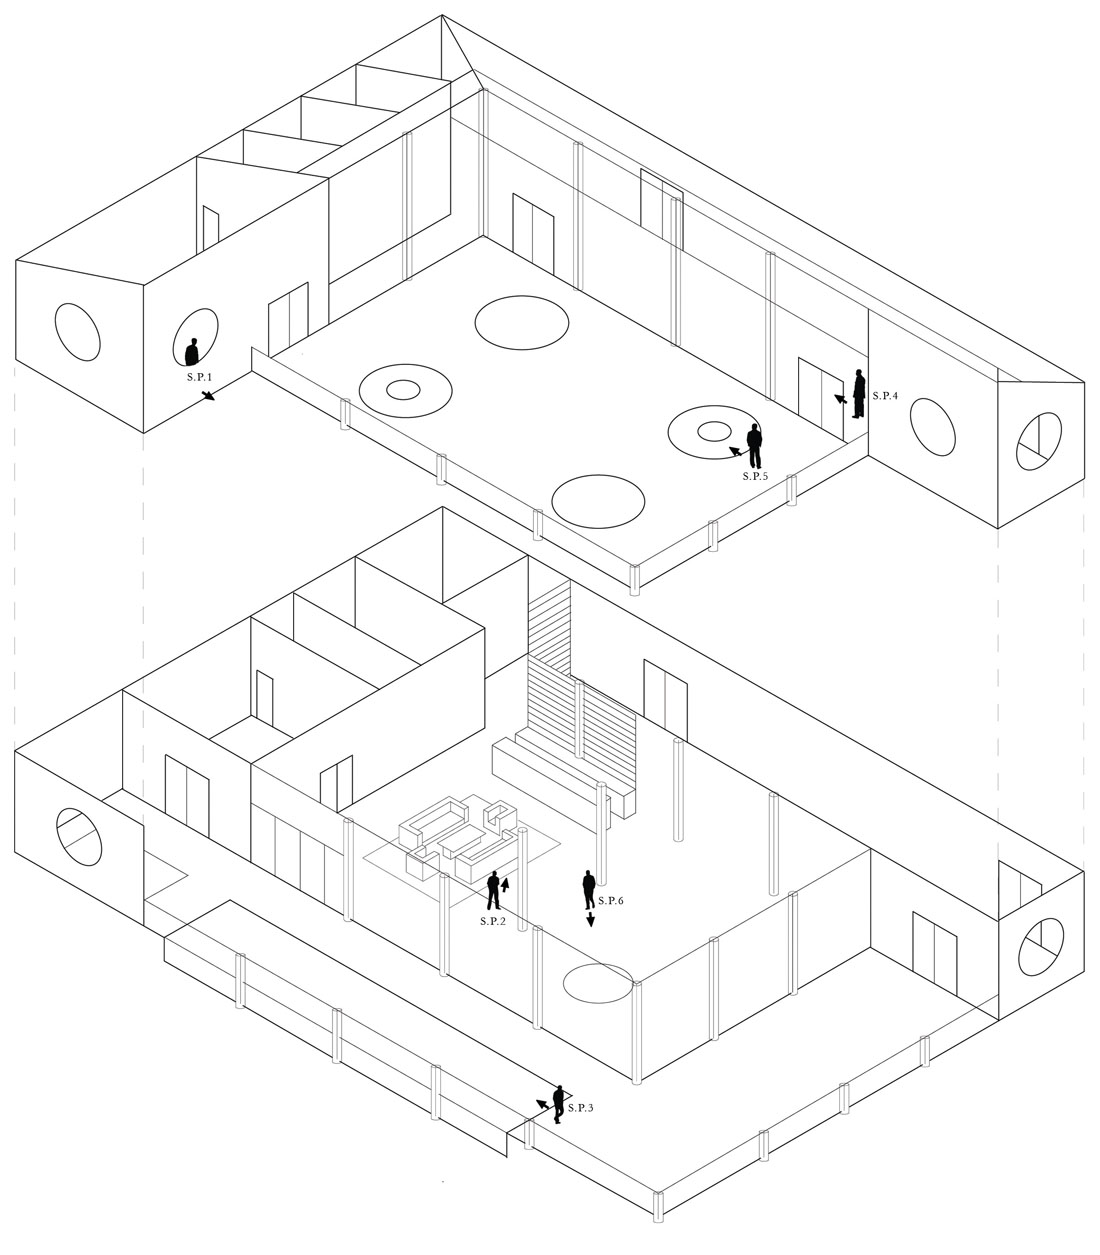 Penthouse Isometric Drawing